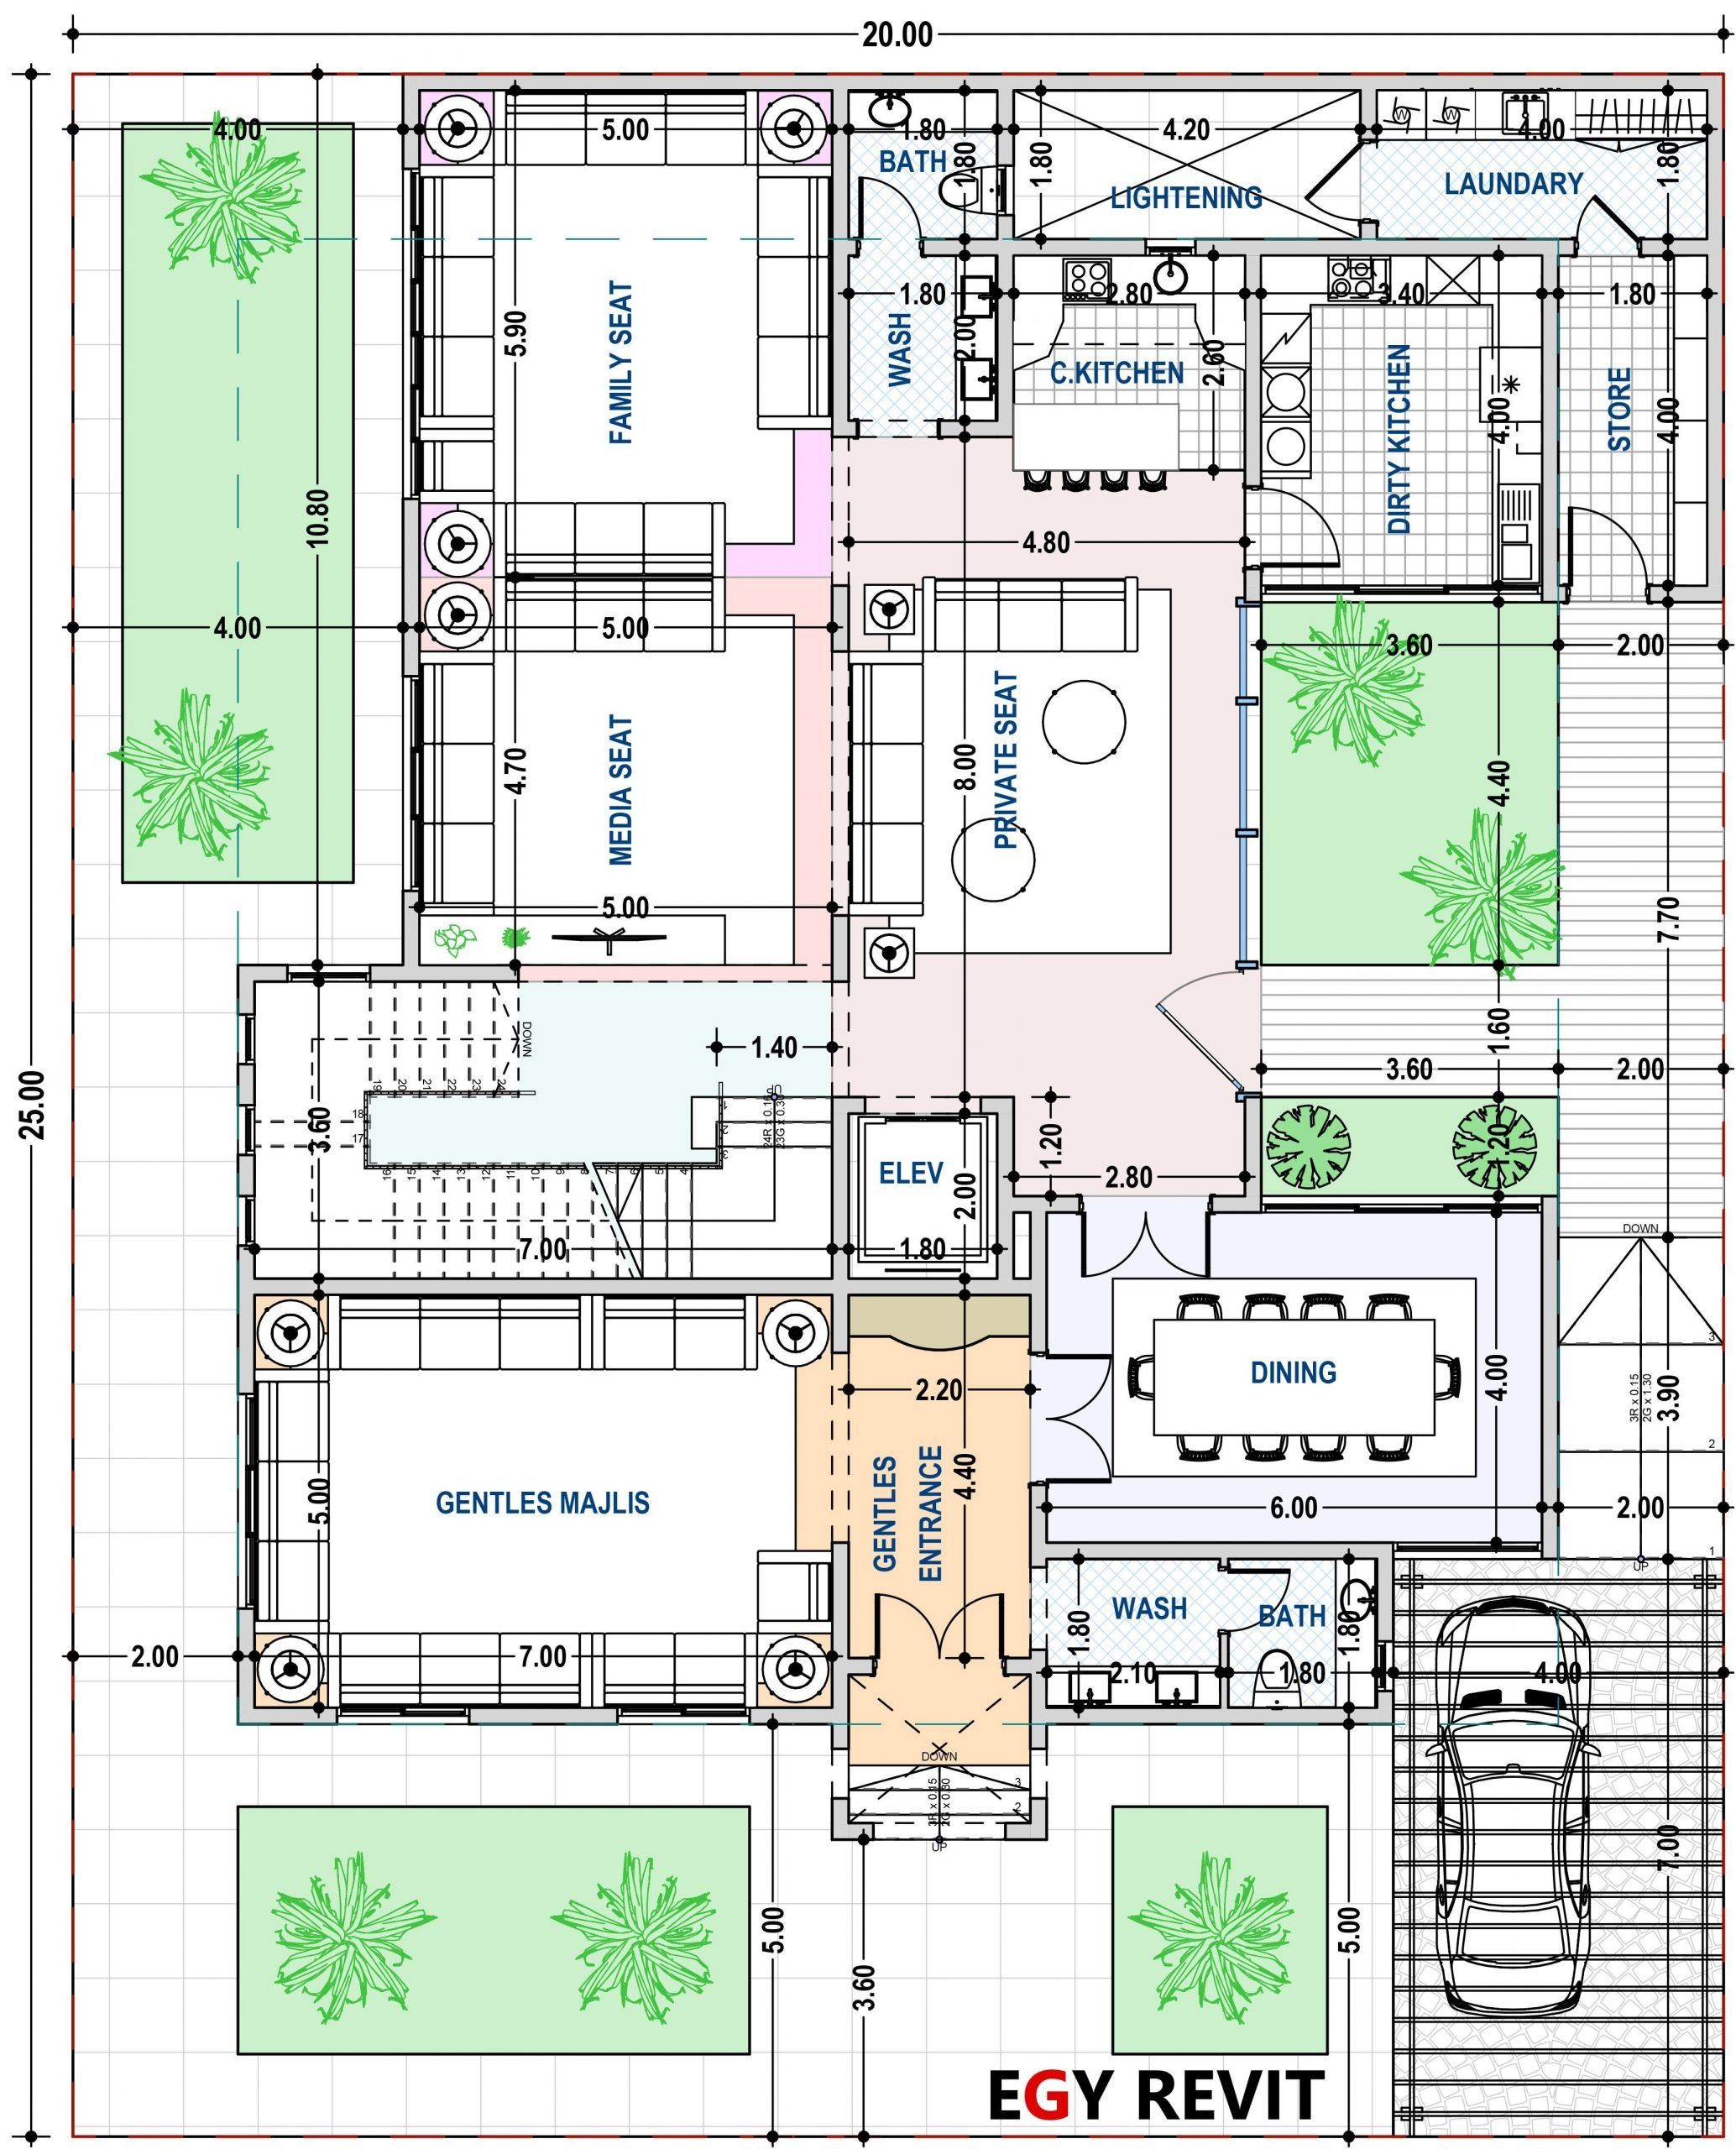 Modern House Plans Free Pdf Egyrevit In 2020 Free House Plans My House Plans Family House Plans